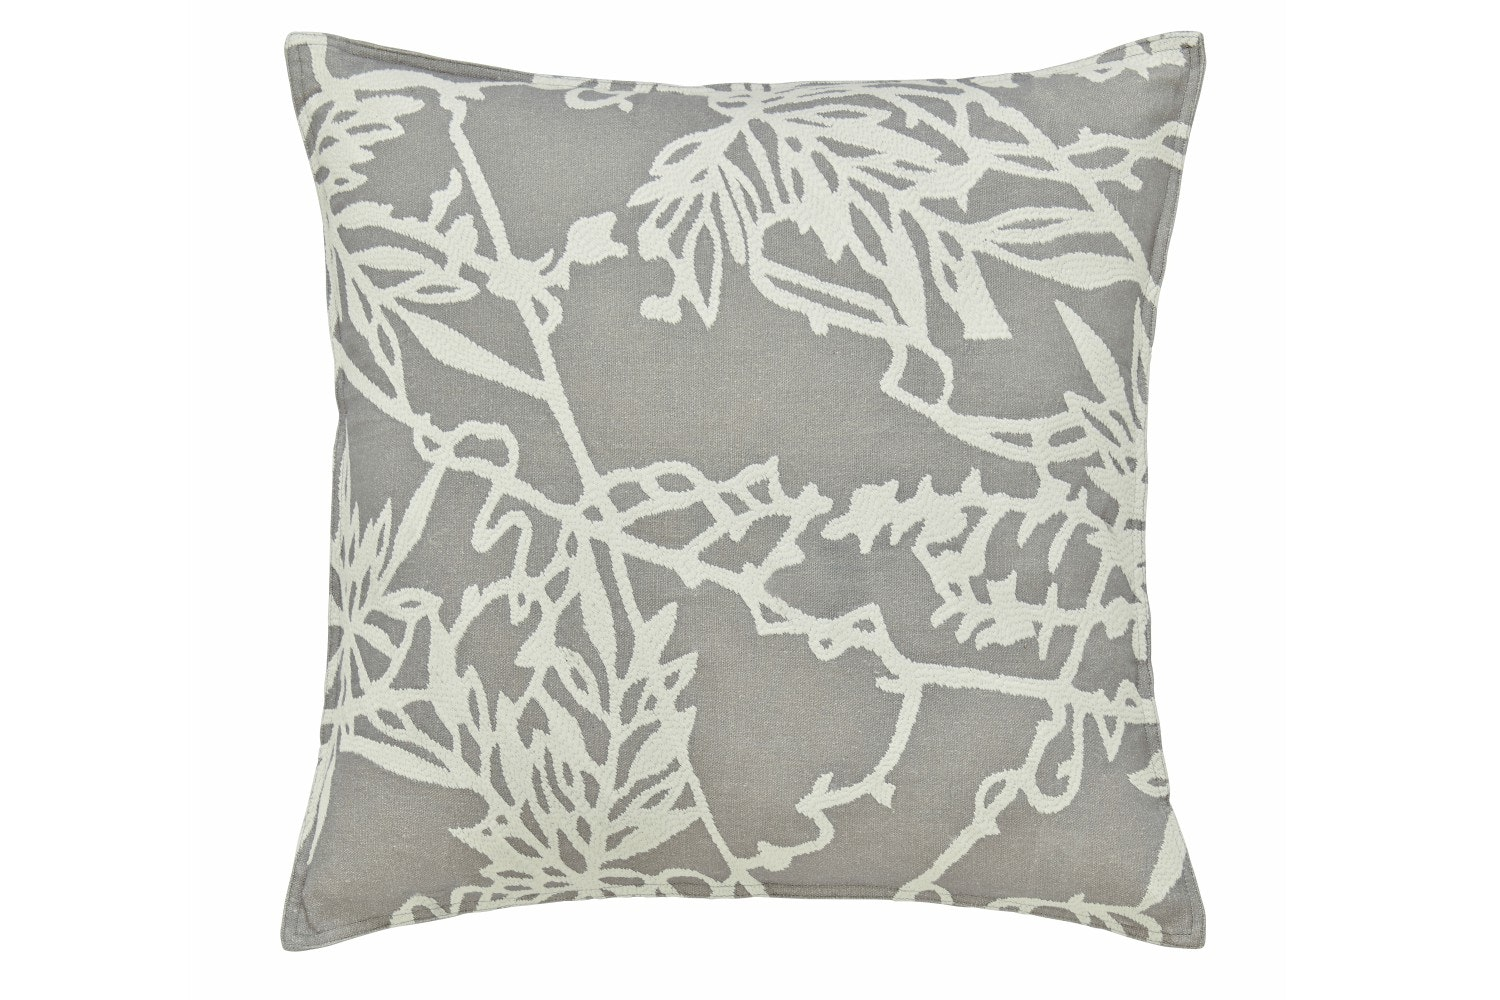 Murmur Etch Cushion Grey & Warm White